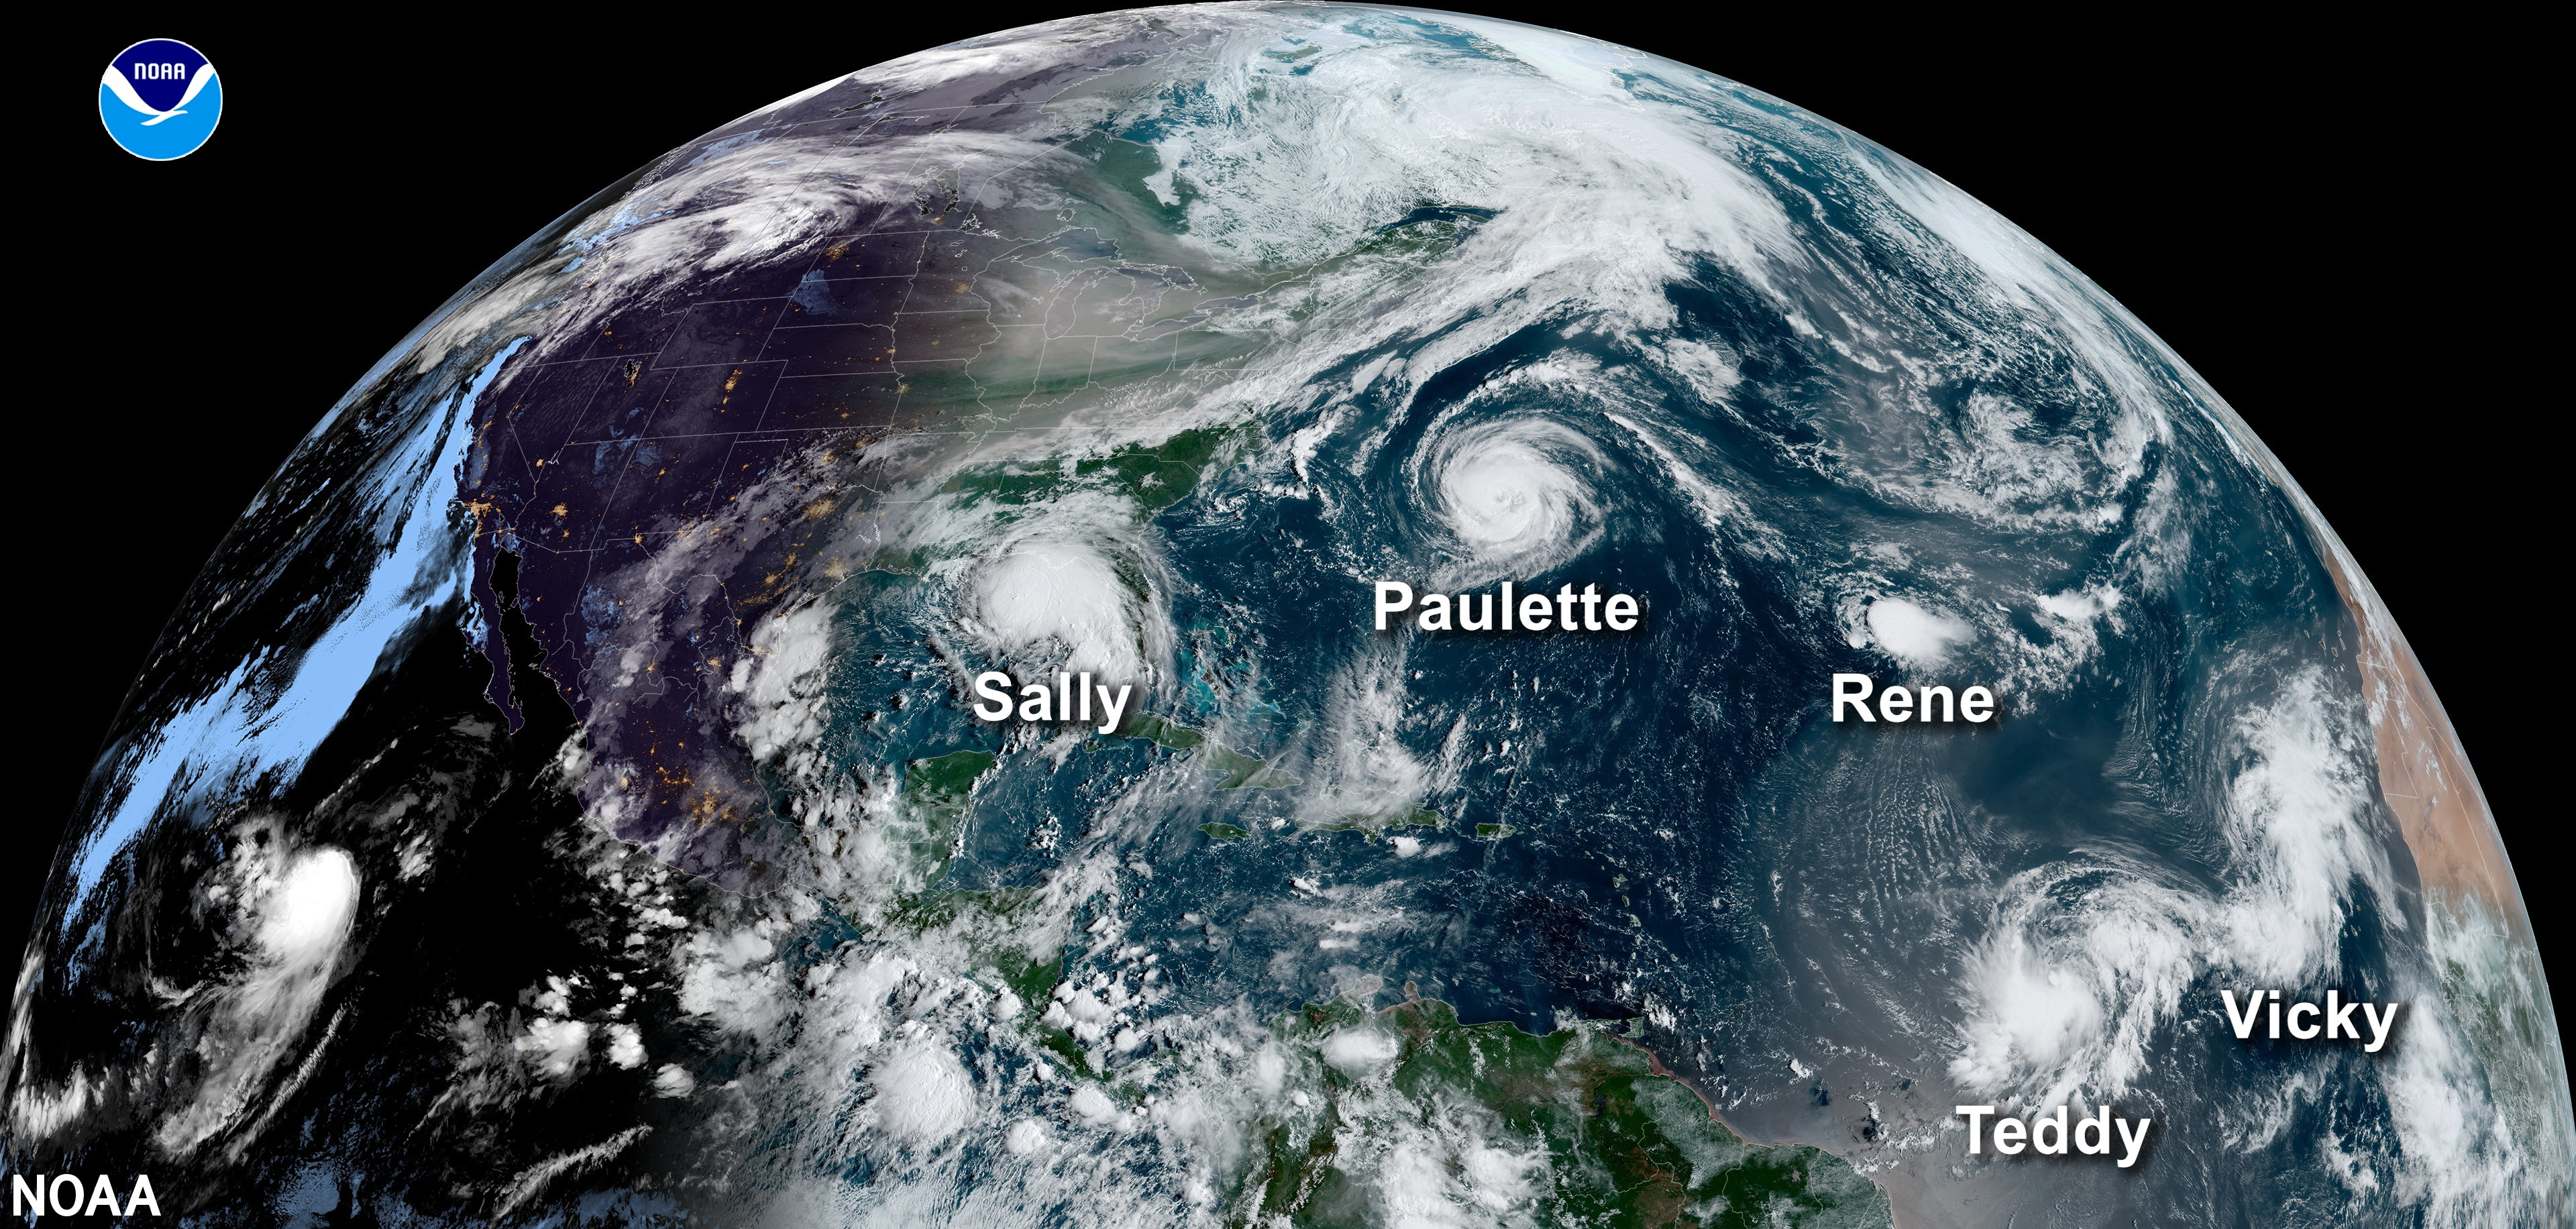 Figure 2. On September 14th, 2020, this satellite image captured 5 tropical systems (2 Hurricanes and 3 Tropical storms) in the Atlantic Ocean at the same time. September 2020 experienced the formation of a total of 10 named storms – the highest number for any month on record according to NOAA.